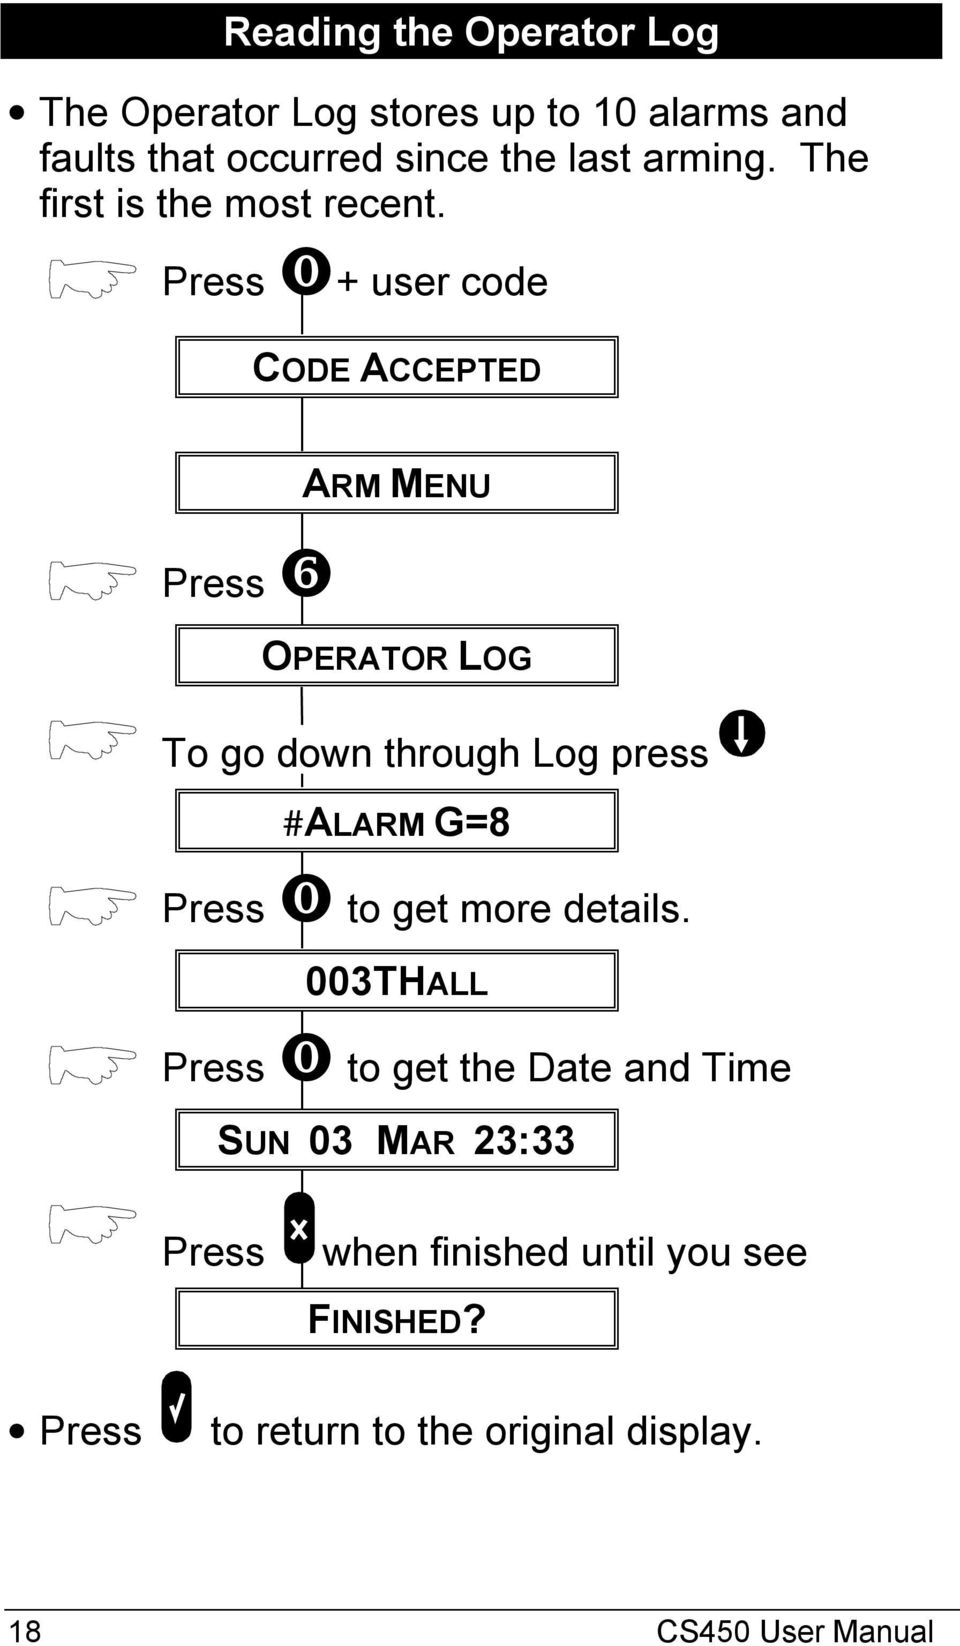 ⓿+ user code CODE ACCEPTED ❻ ARM MENU OPERATOR LOG To go down through Log press #ALARM G=8 ⓿ to get